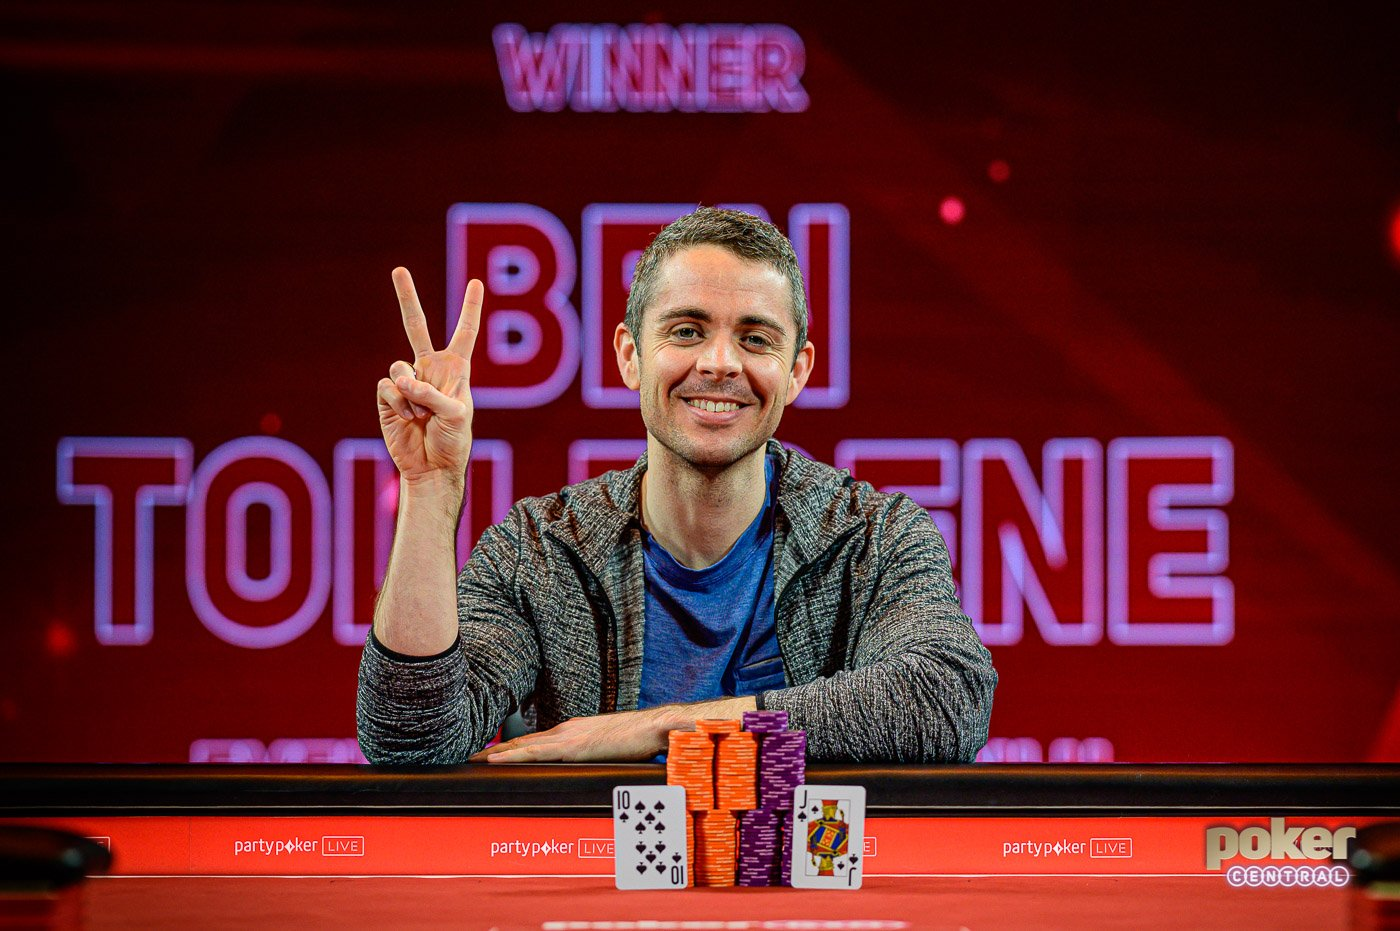 Mikita Badziakouski and Ben Tollerene win big at British Poker Open